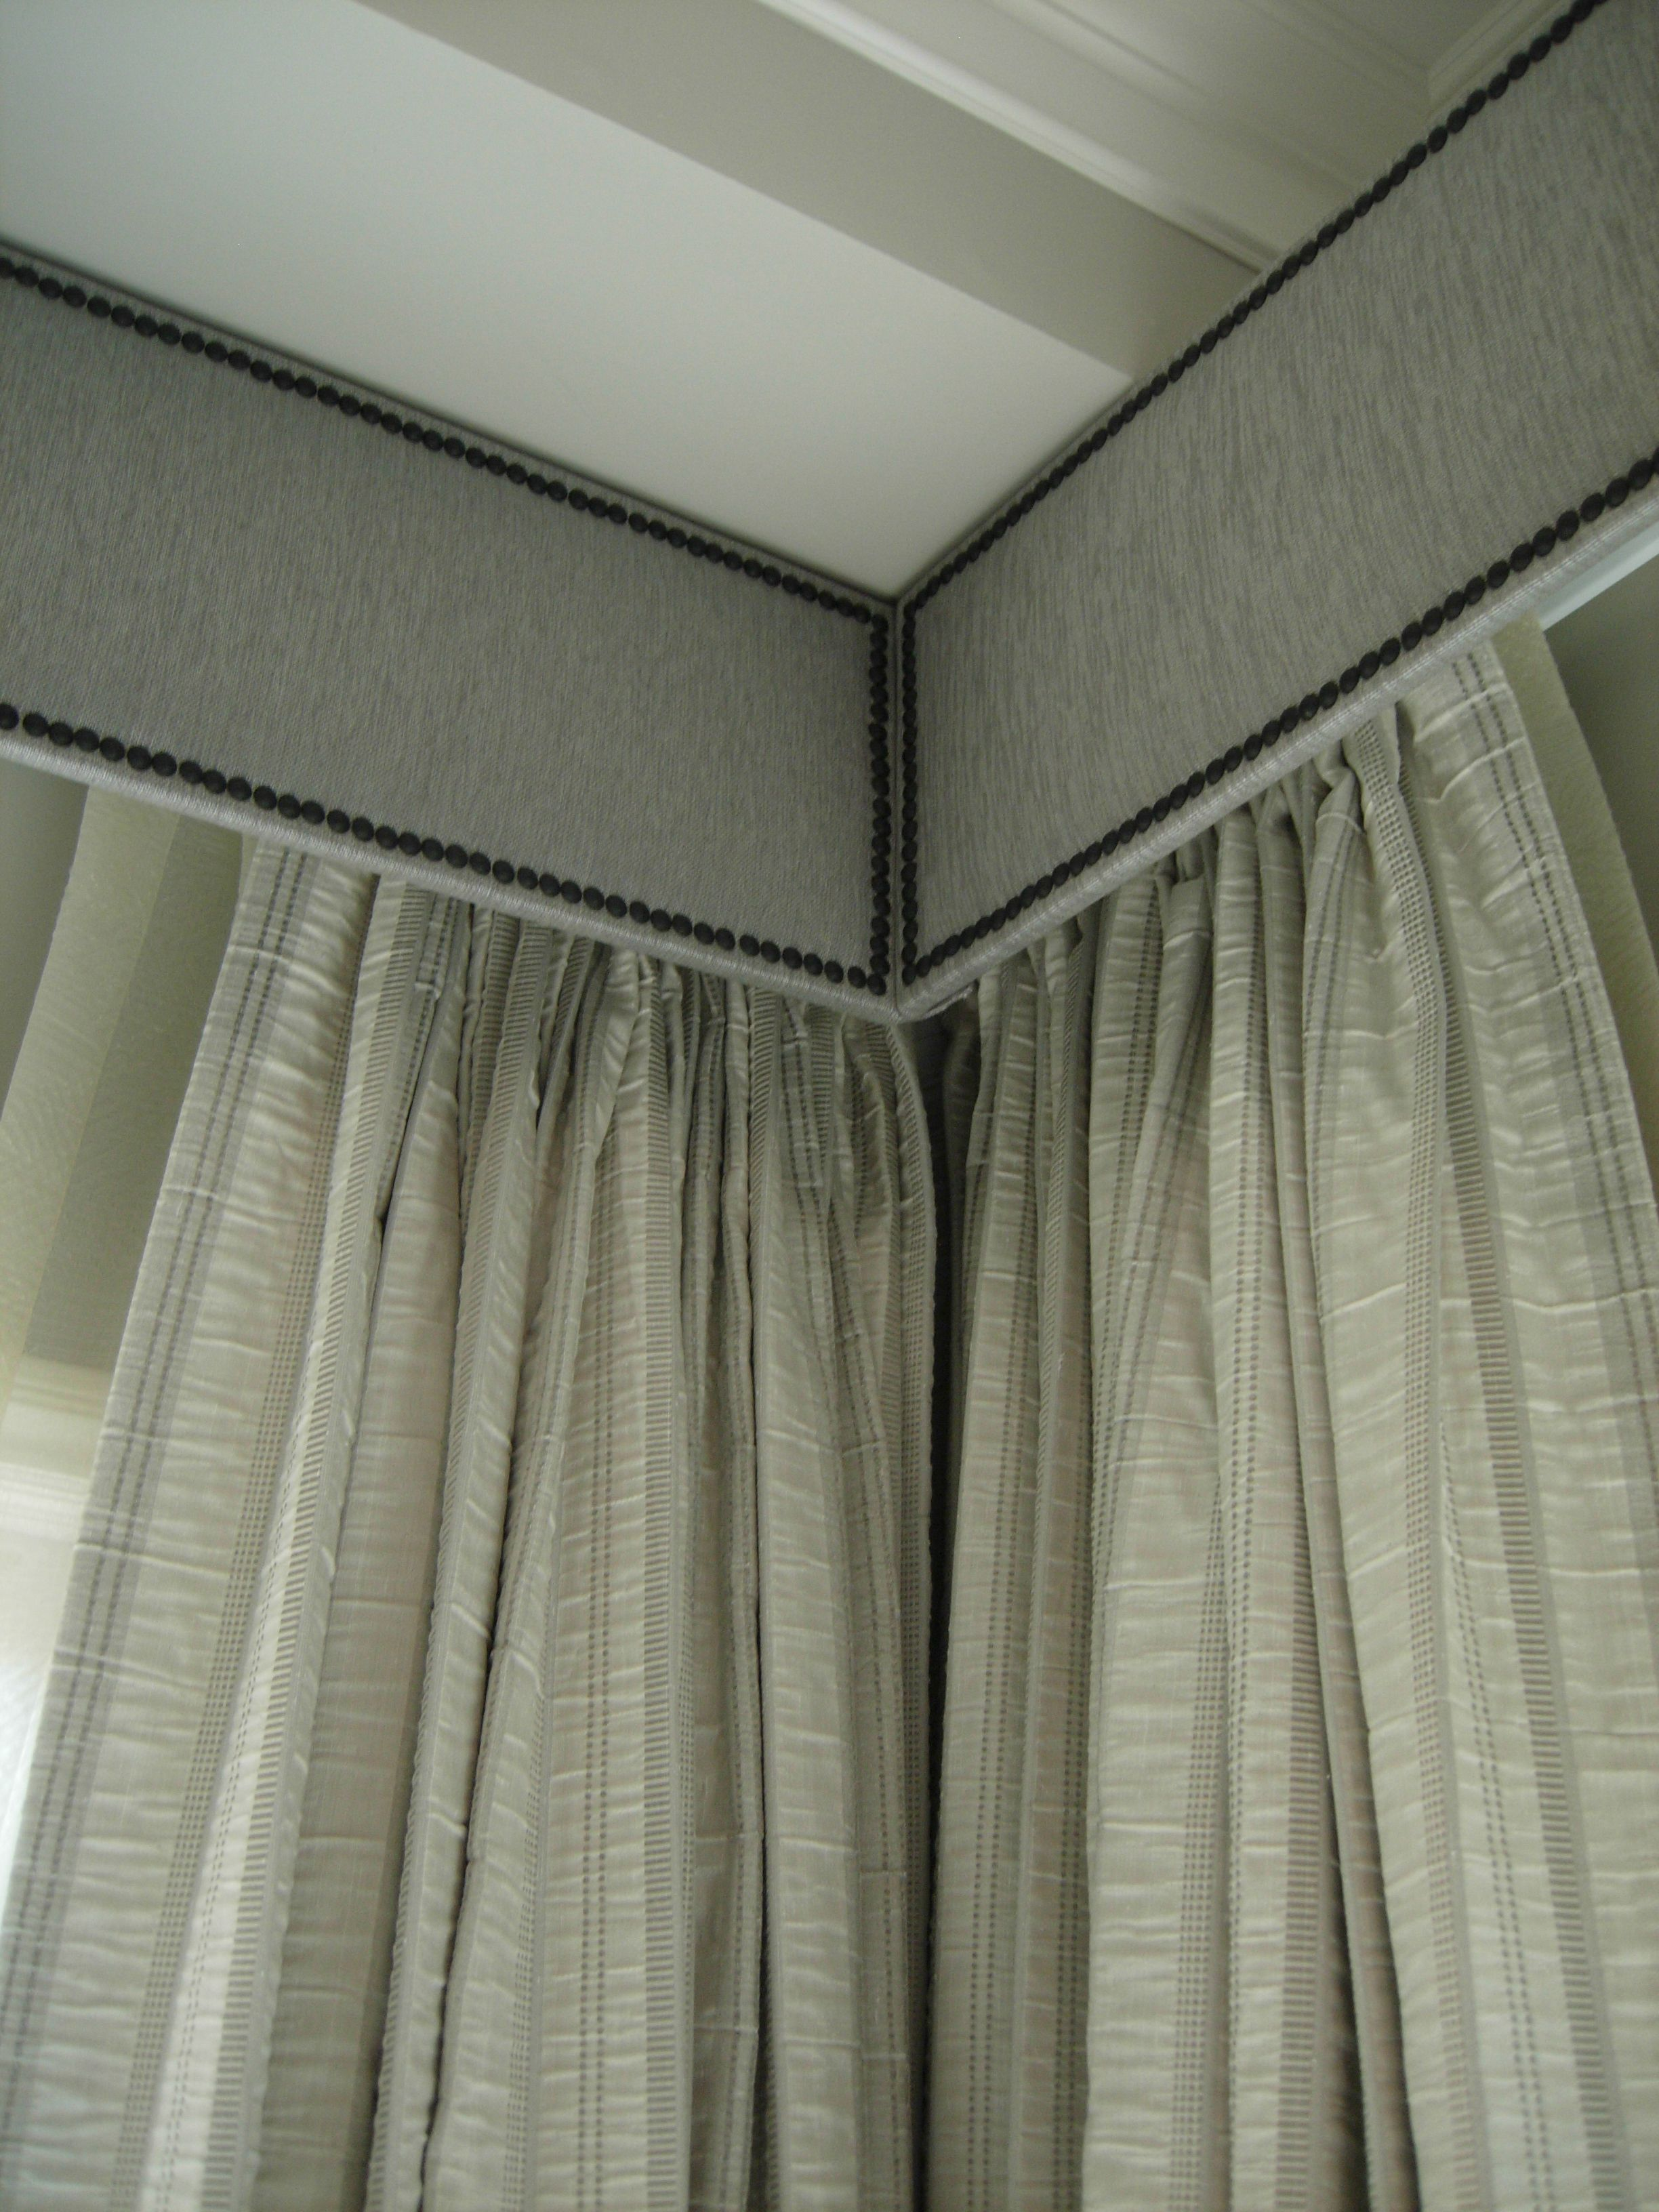 Office window coverings  large space cornice boards   home design  pinterest